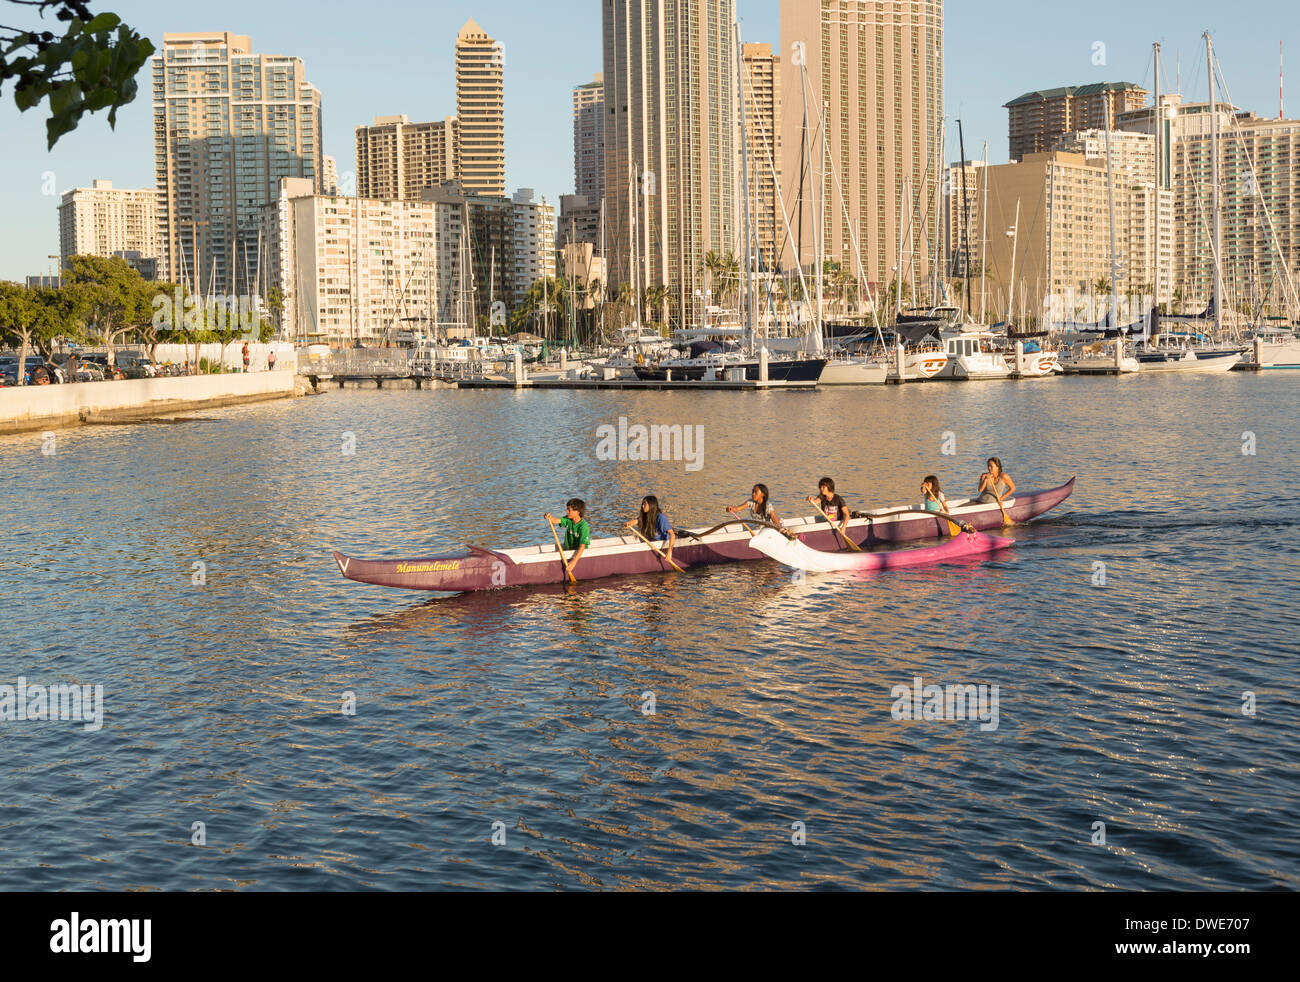 Honolulu, Hawaii, USA - Group of boys and girls paddle an outrigger Hawaiian canoe in the harbor by Ala Moana beach park - Stock Image